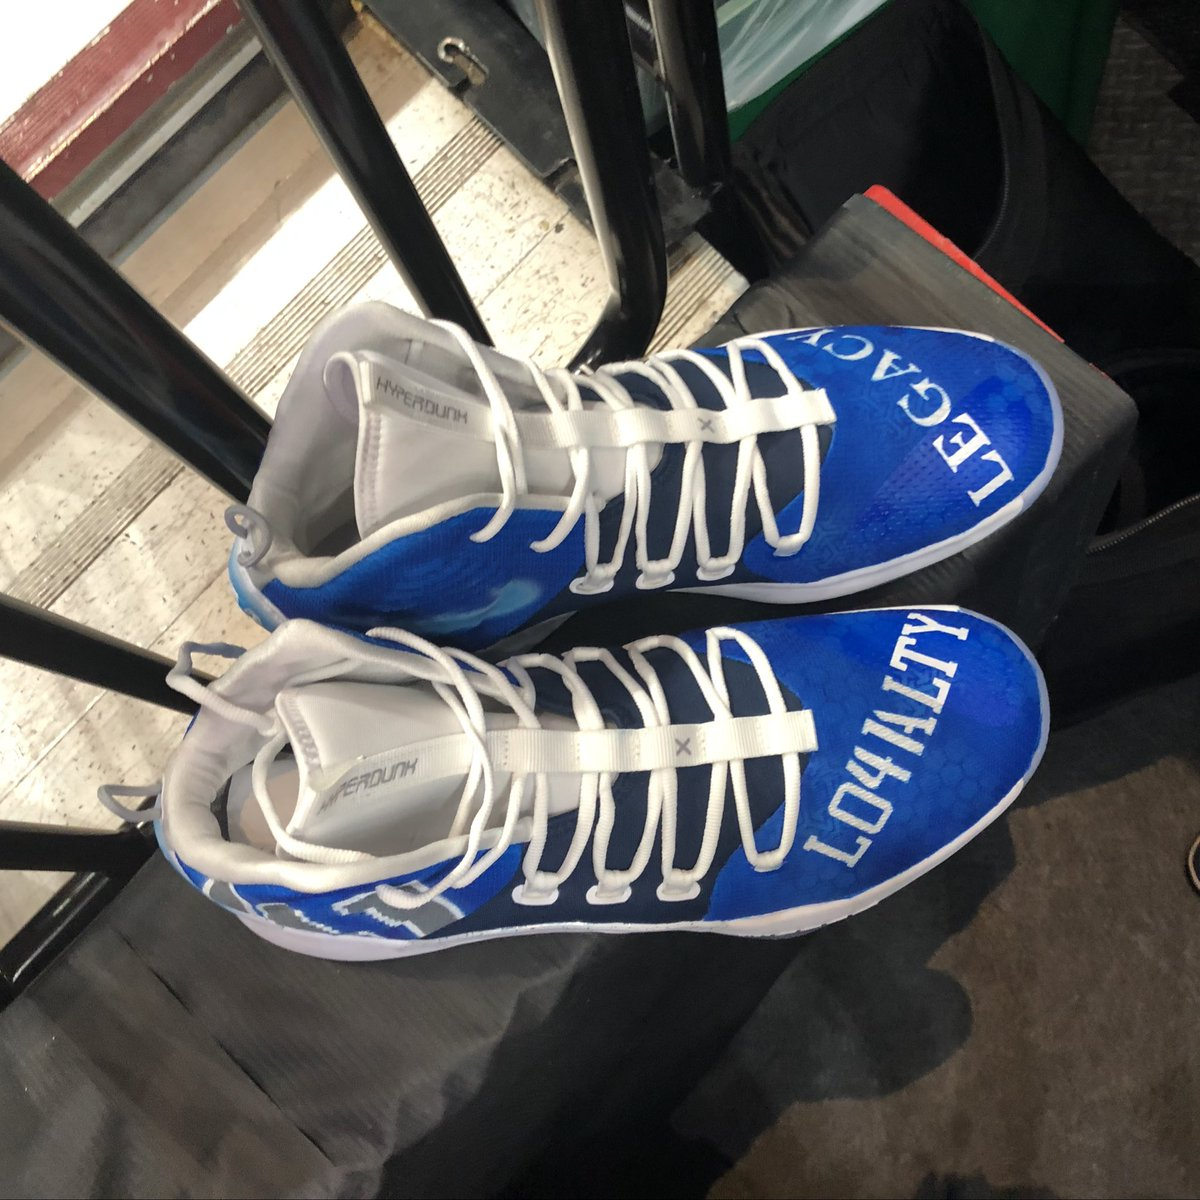 🔥👟 Kicks for @swish41 from a fan!!! #MFFL